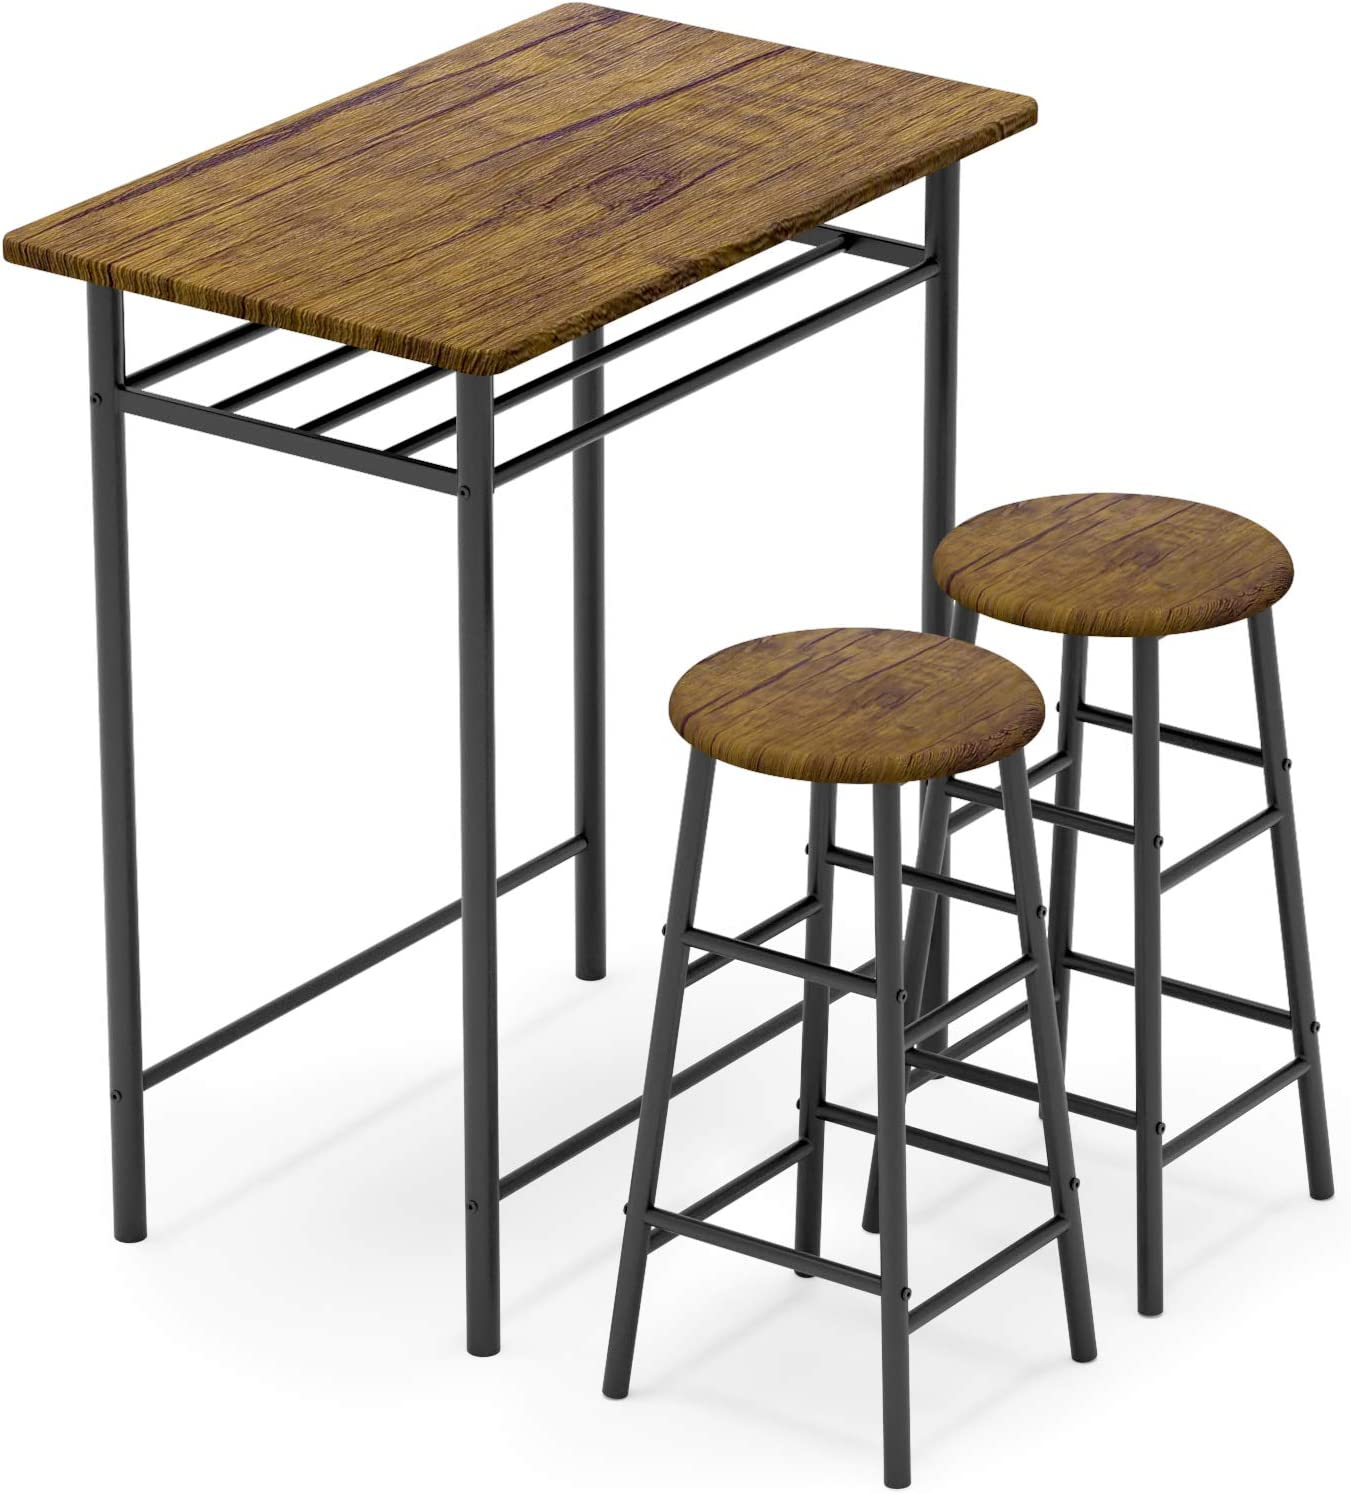 WeeHom Bar Table with 2 Bar Stools, Pub Dining Height Table Set, Kitchen Counter with Bar Chairs,Bistro Table Sets for Kitchen Living Room, Built in Storage Layer, Easy Assemble